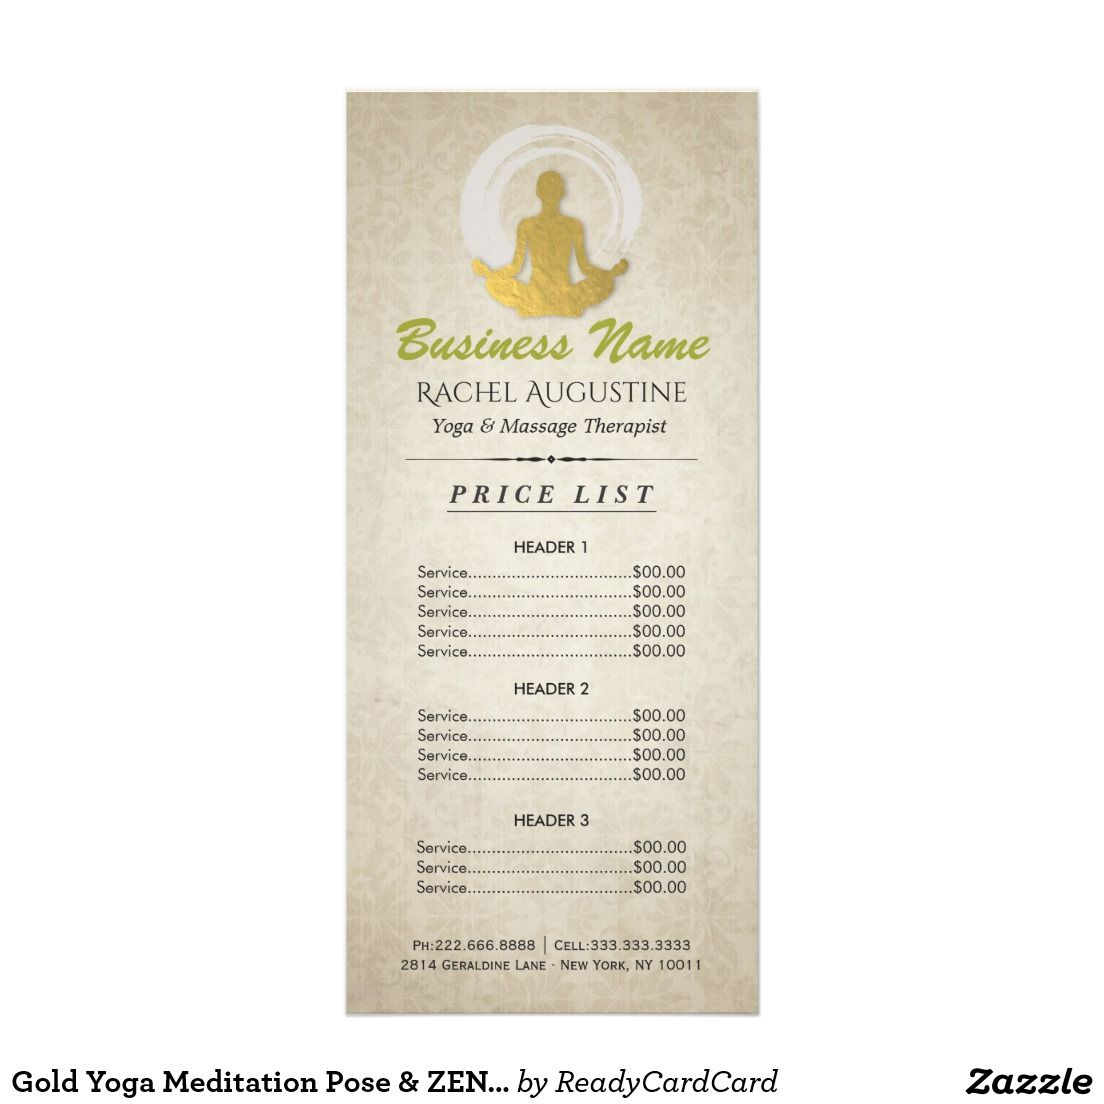 Gold Yoga Meditation Pose & ZEN Symbol Price List Rack Card | YOGA ...